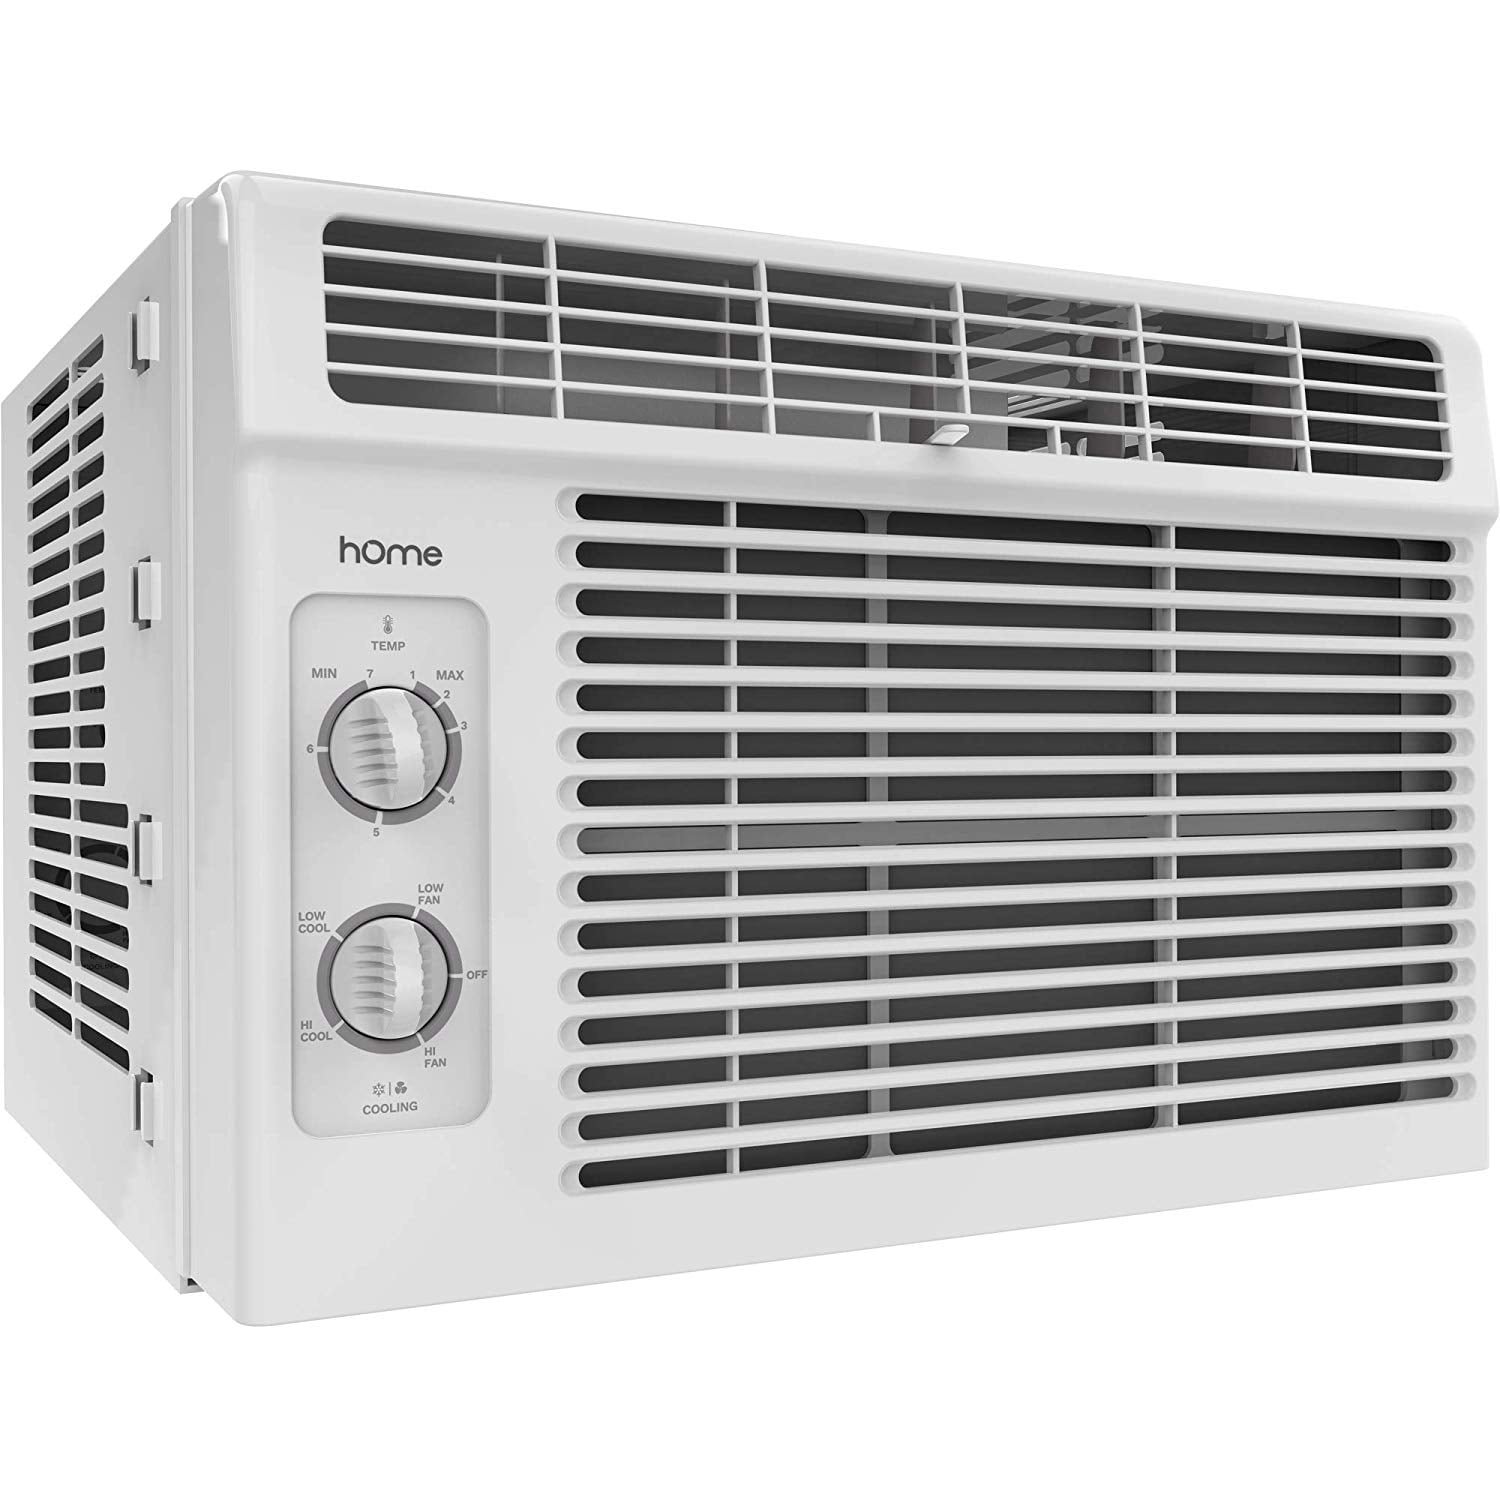 Homelabs 5000 Btu Window Mounted Air Conditioner 7 Speed Window Ac Unit Small Quiet Mechanical Controls 2 Cool And Fan Settings With Installation Kit Leaf Guards Washable Filter Indoor Room Ac